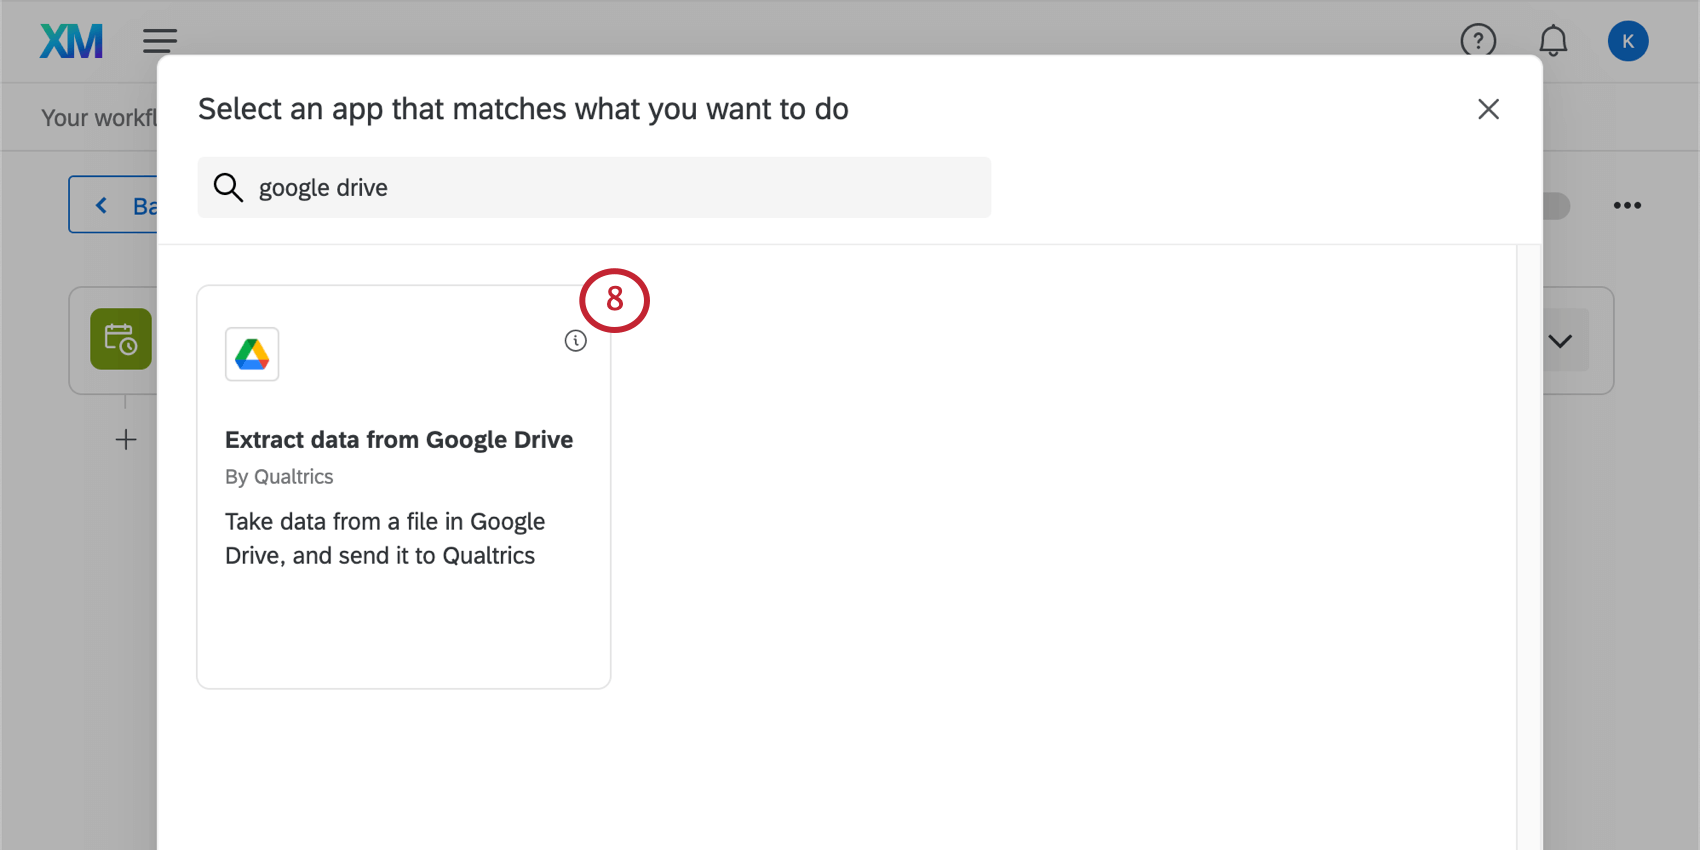 use the search bar at the top to search for the google drive task